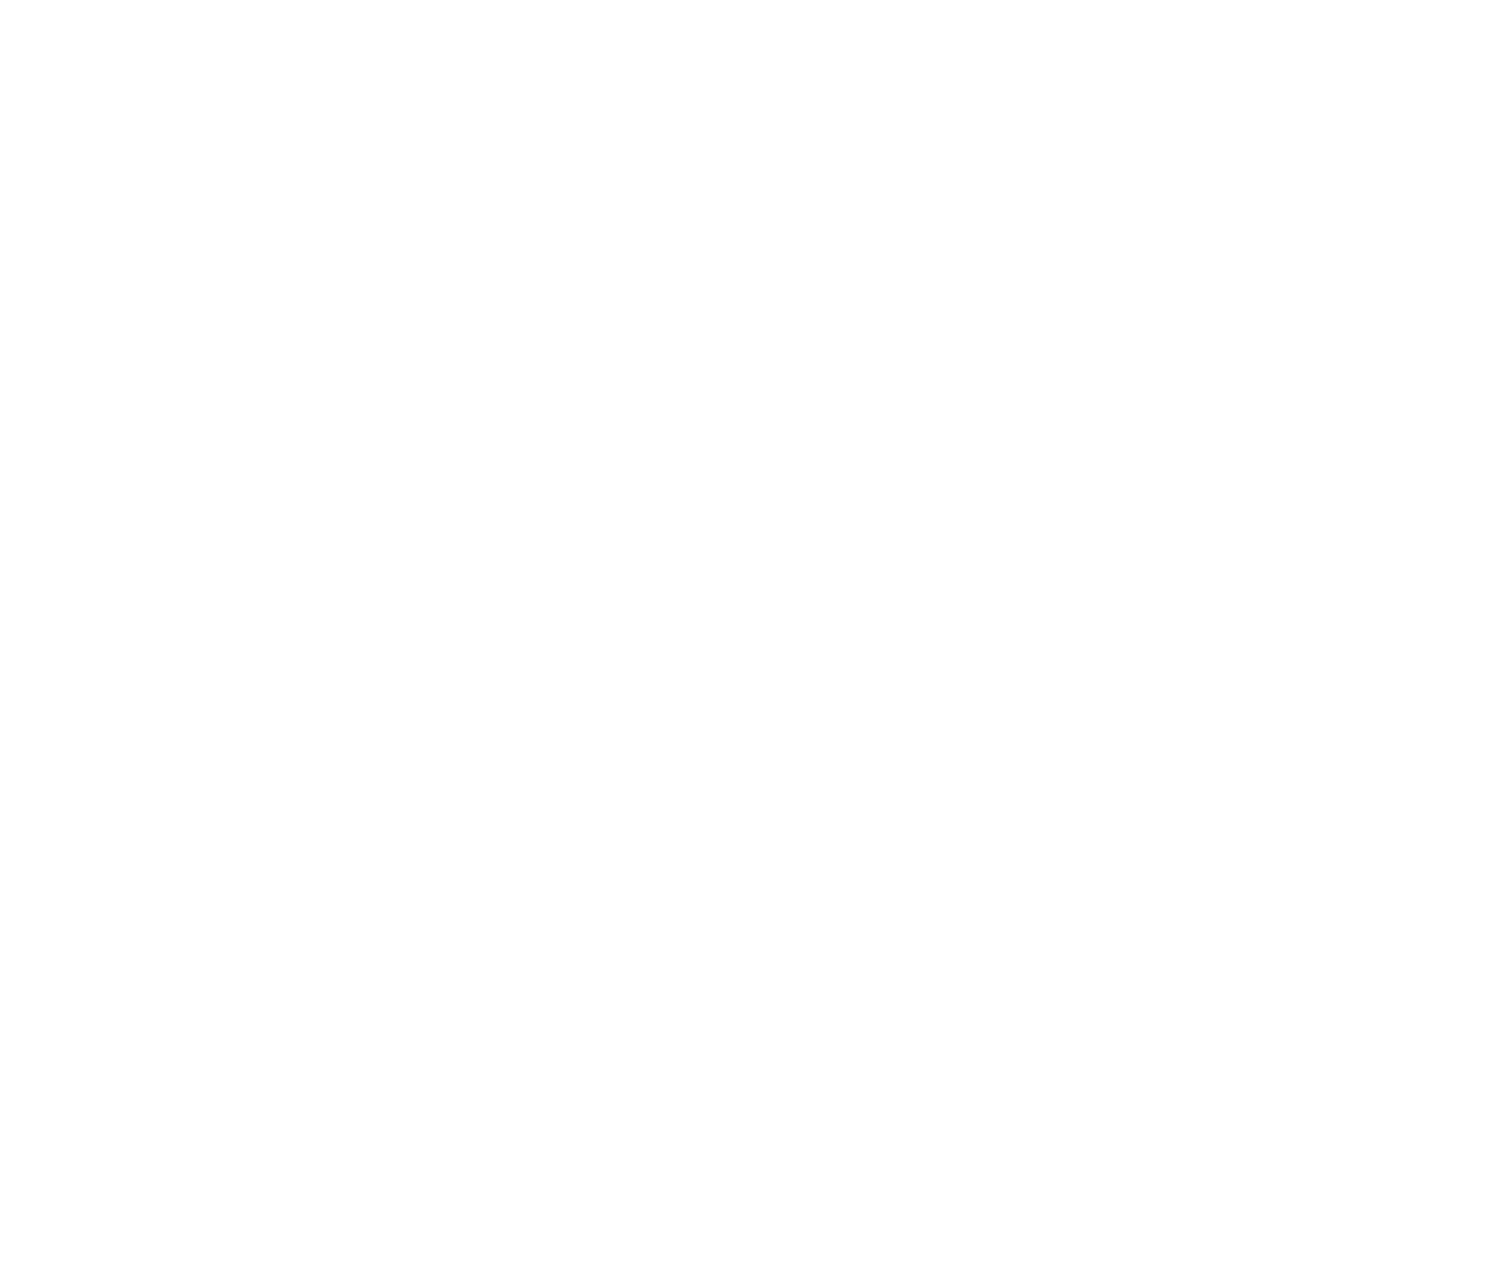 2nd Deck Creative